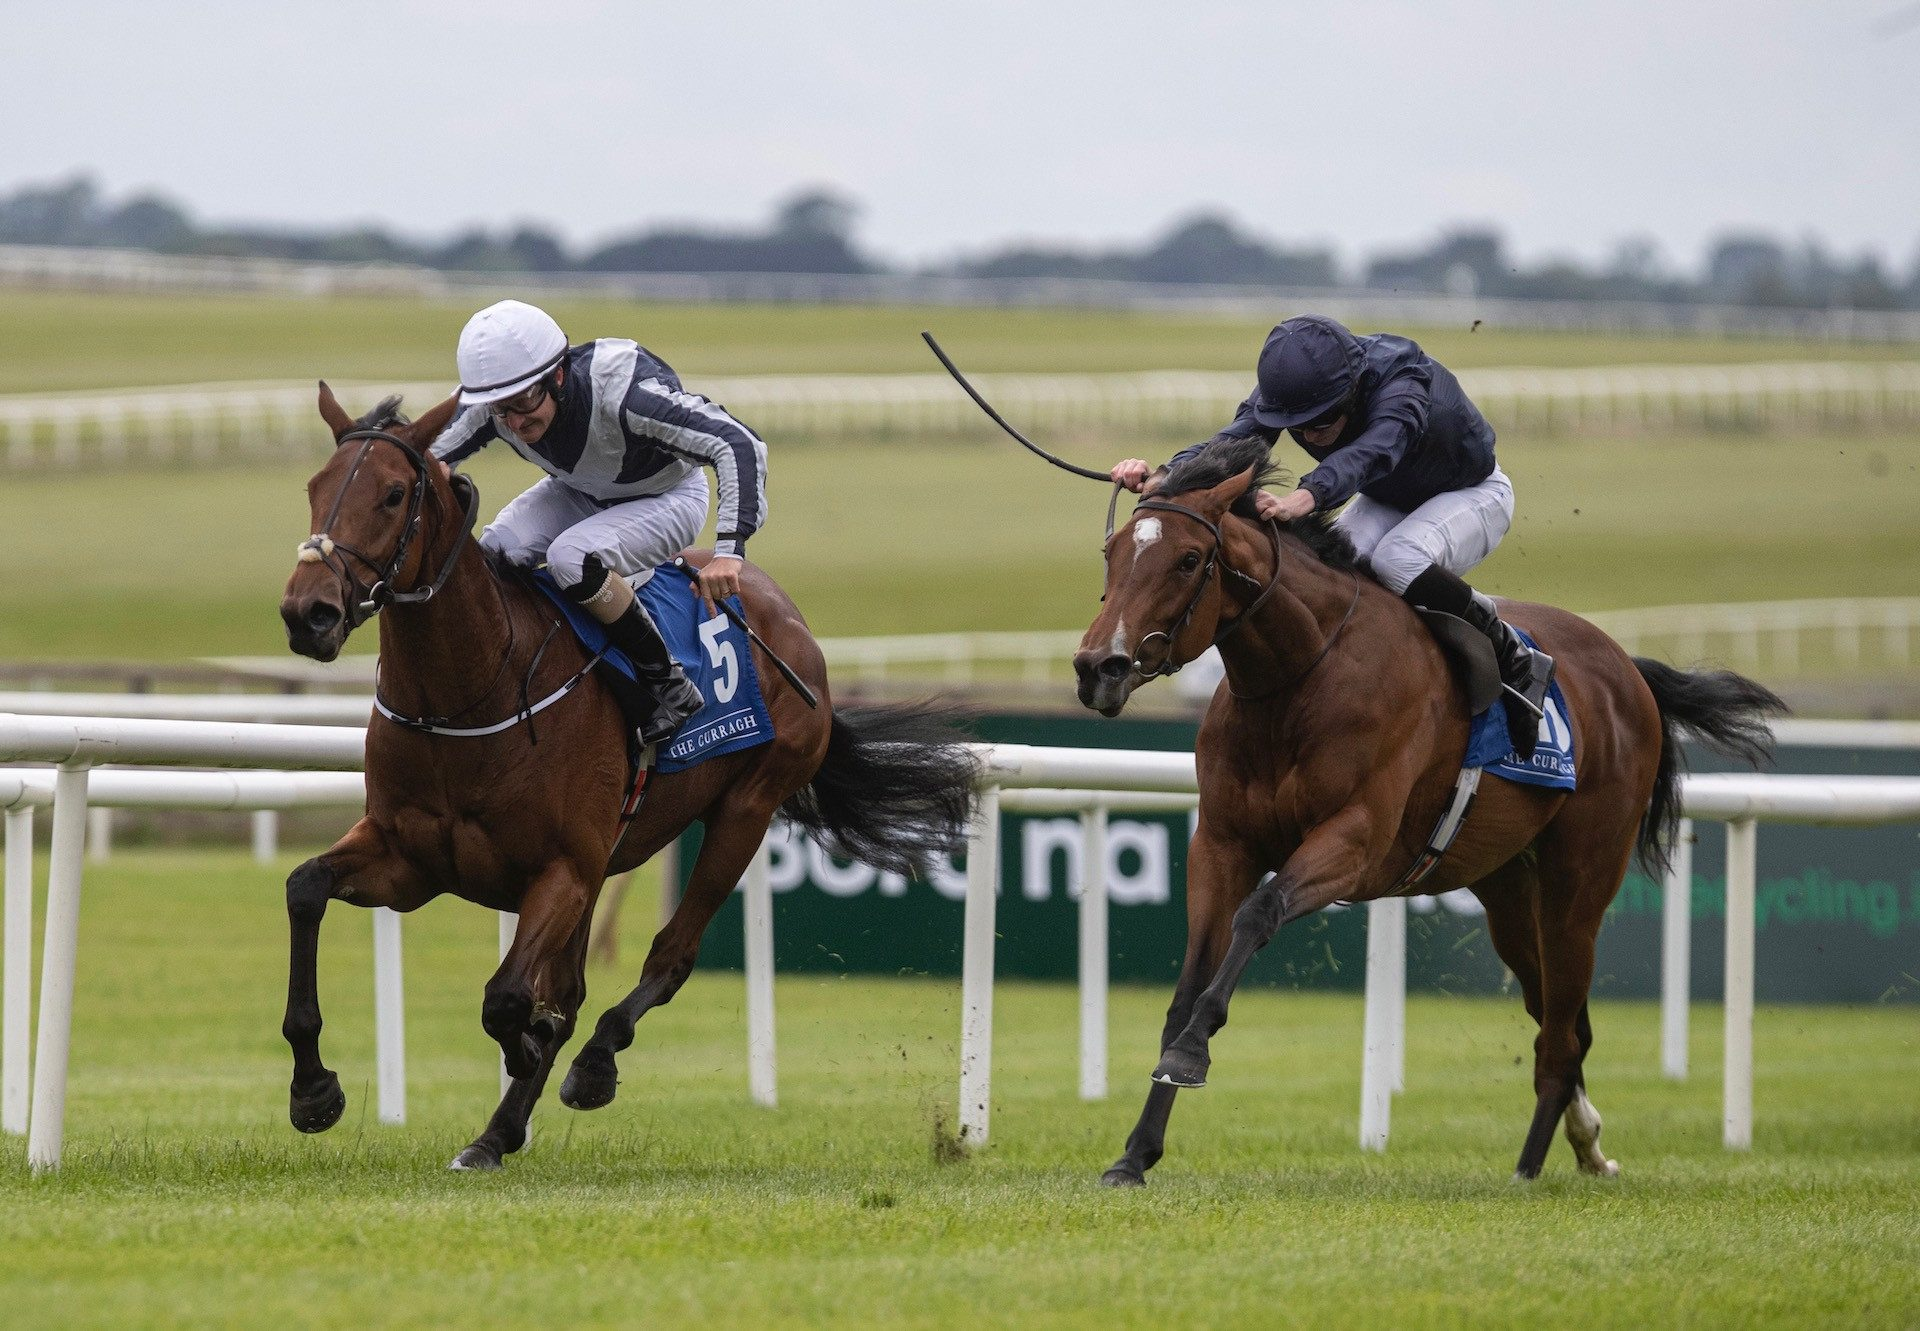 Discoveries (Mastercraftsman) Wins The Fillies Maiden At The Curragh